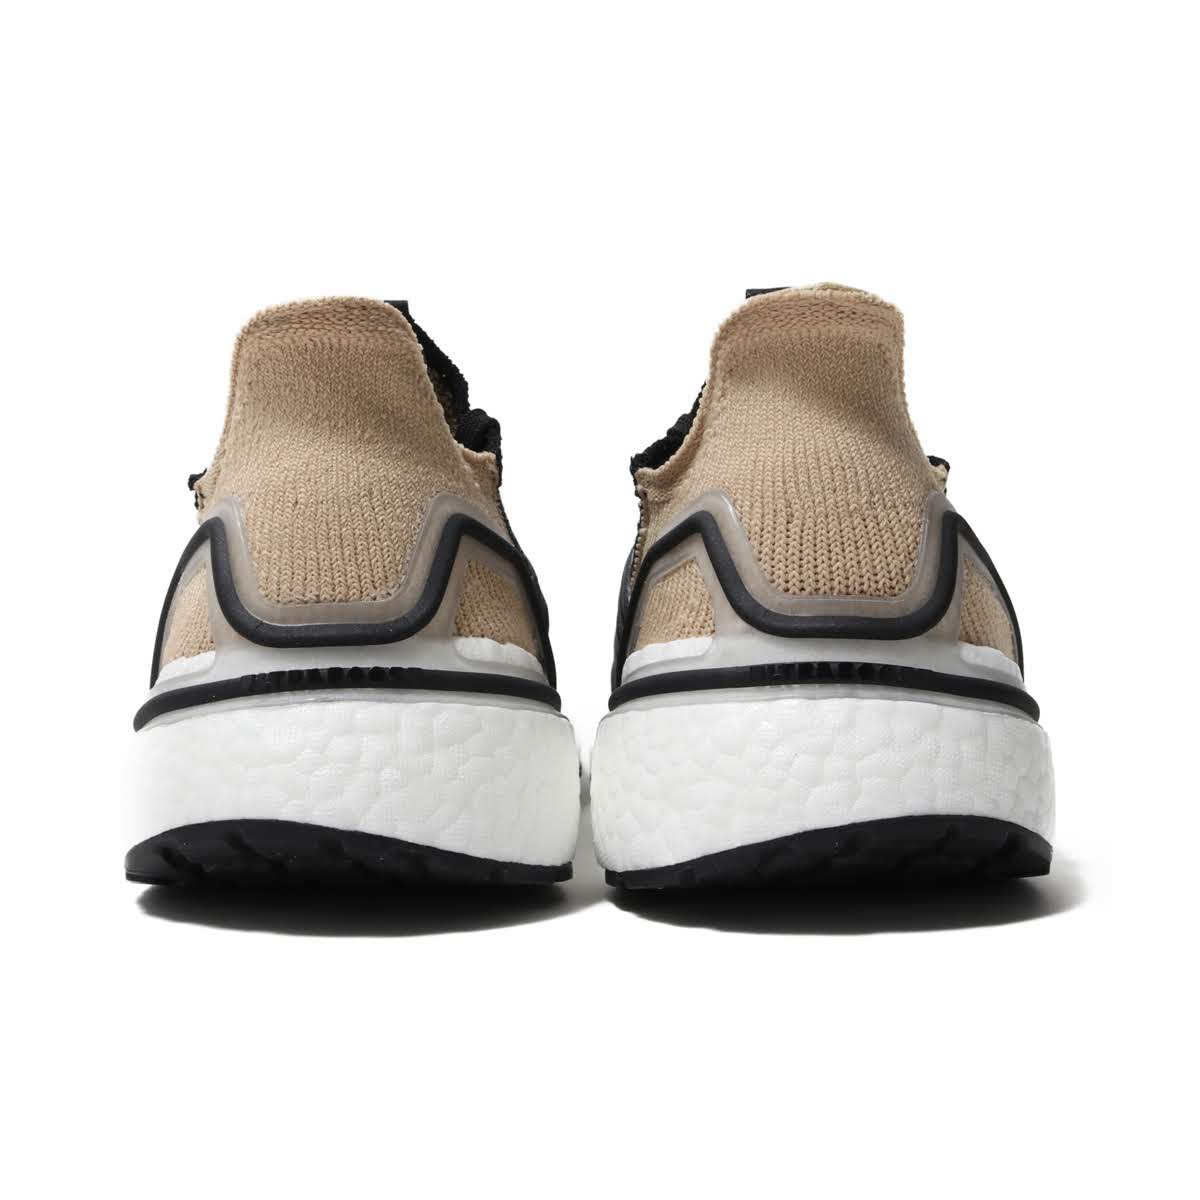 9afcd210946 Kinetics  adidas UltraBOOST 19 (CORE BLACK RAW SAND GREY SIX .